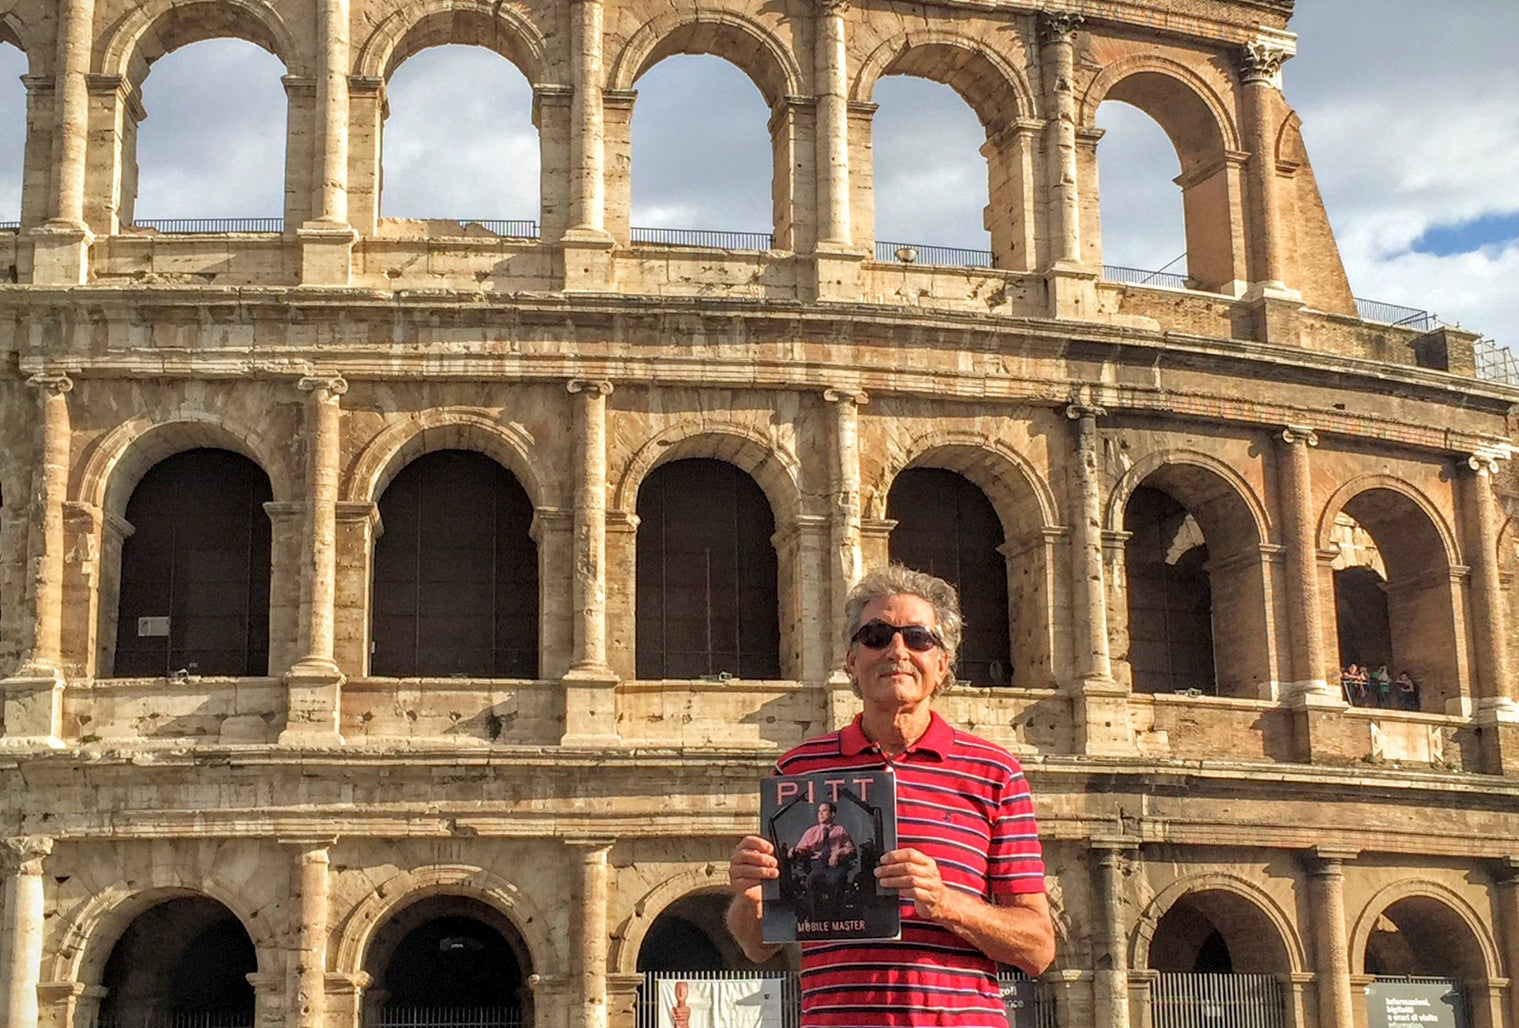 Pitt Magazine tags along with J.P. Blake (A&S '70) on a visit to the Colosseum in Rome, Italy.